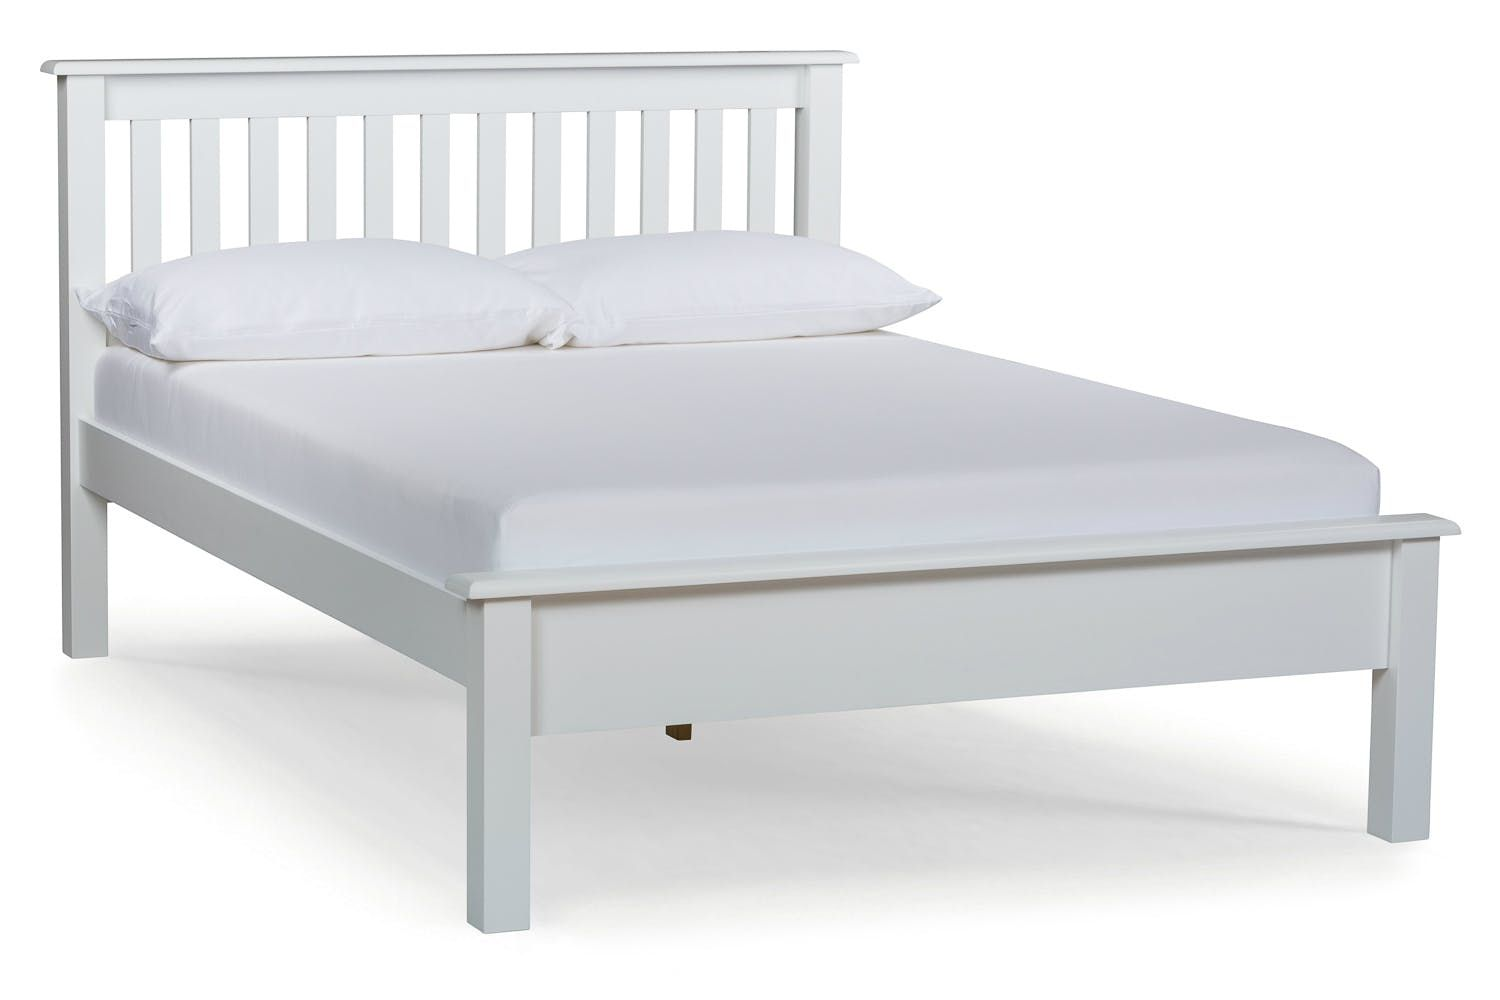 Image Result For White Bed Frame Double White Wooden Bed White